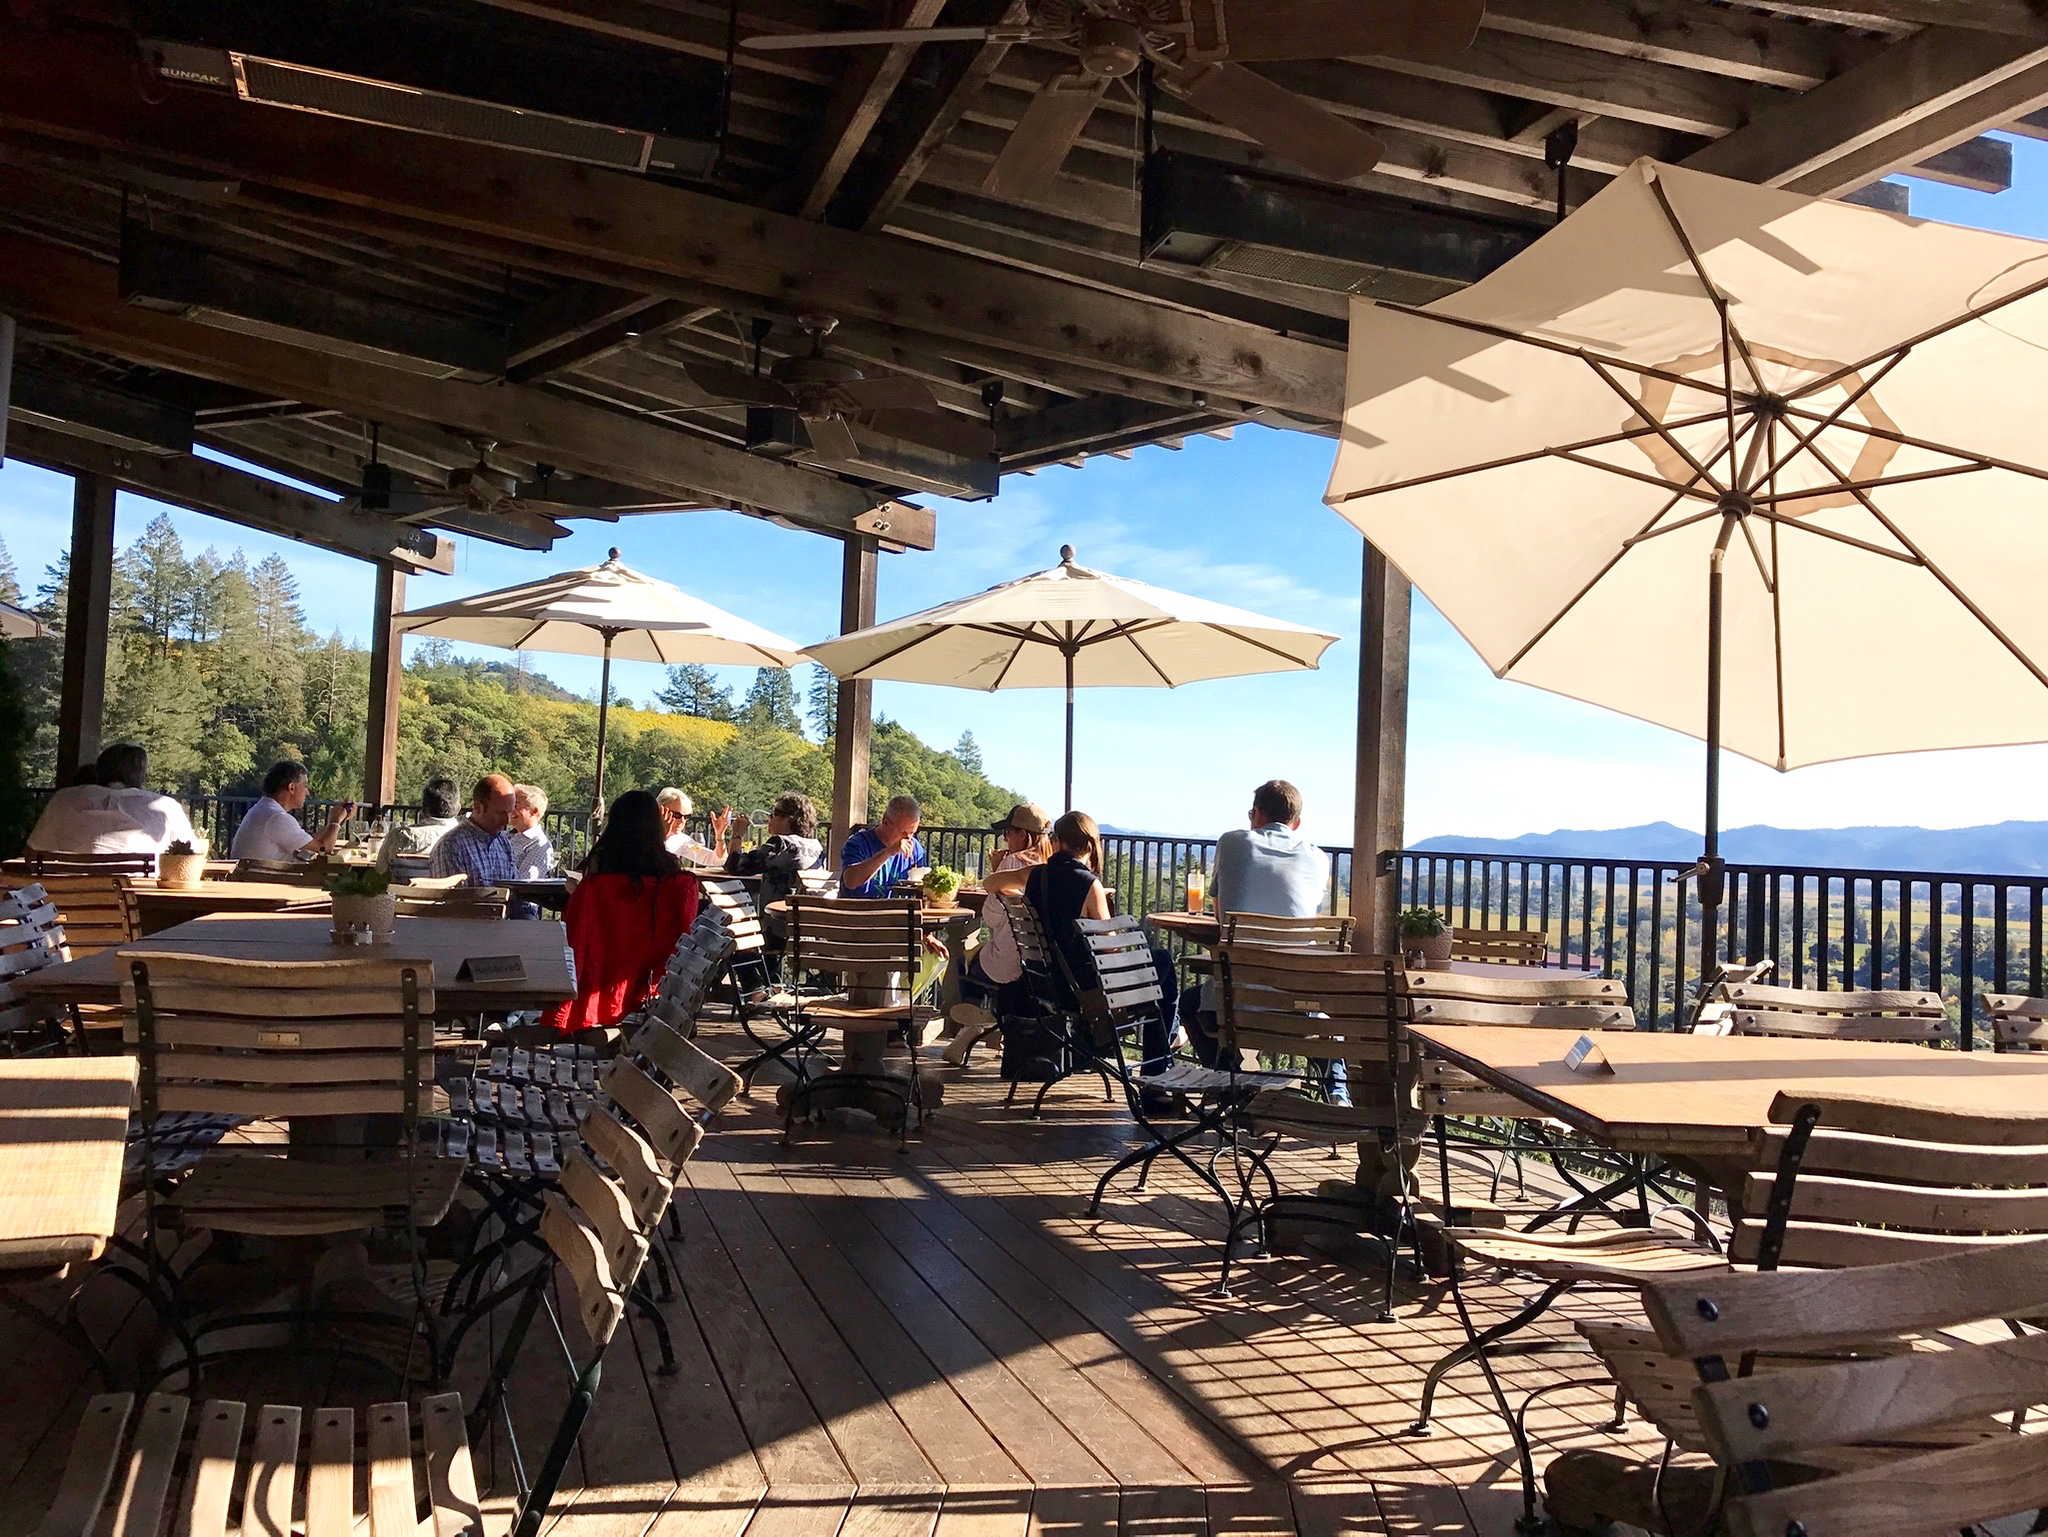 Enjoying this veranda during lunch: The bistro is casual and perfect for a lazy peaceful meal.